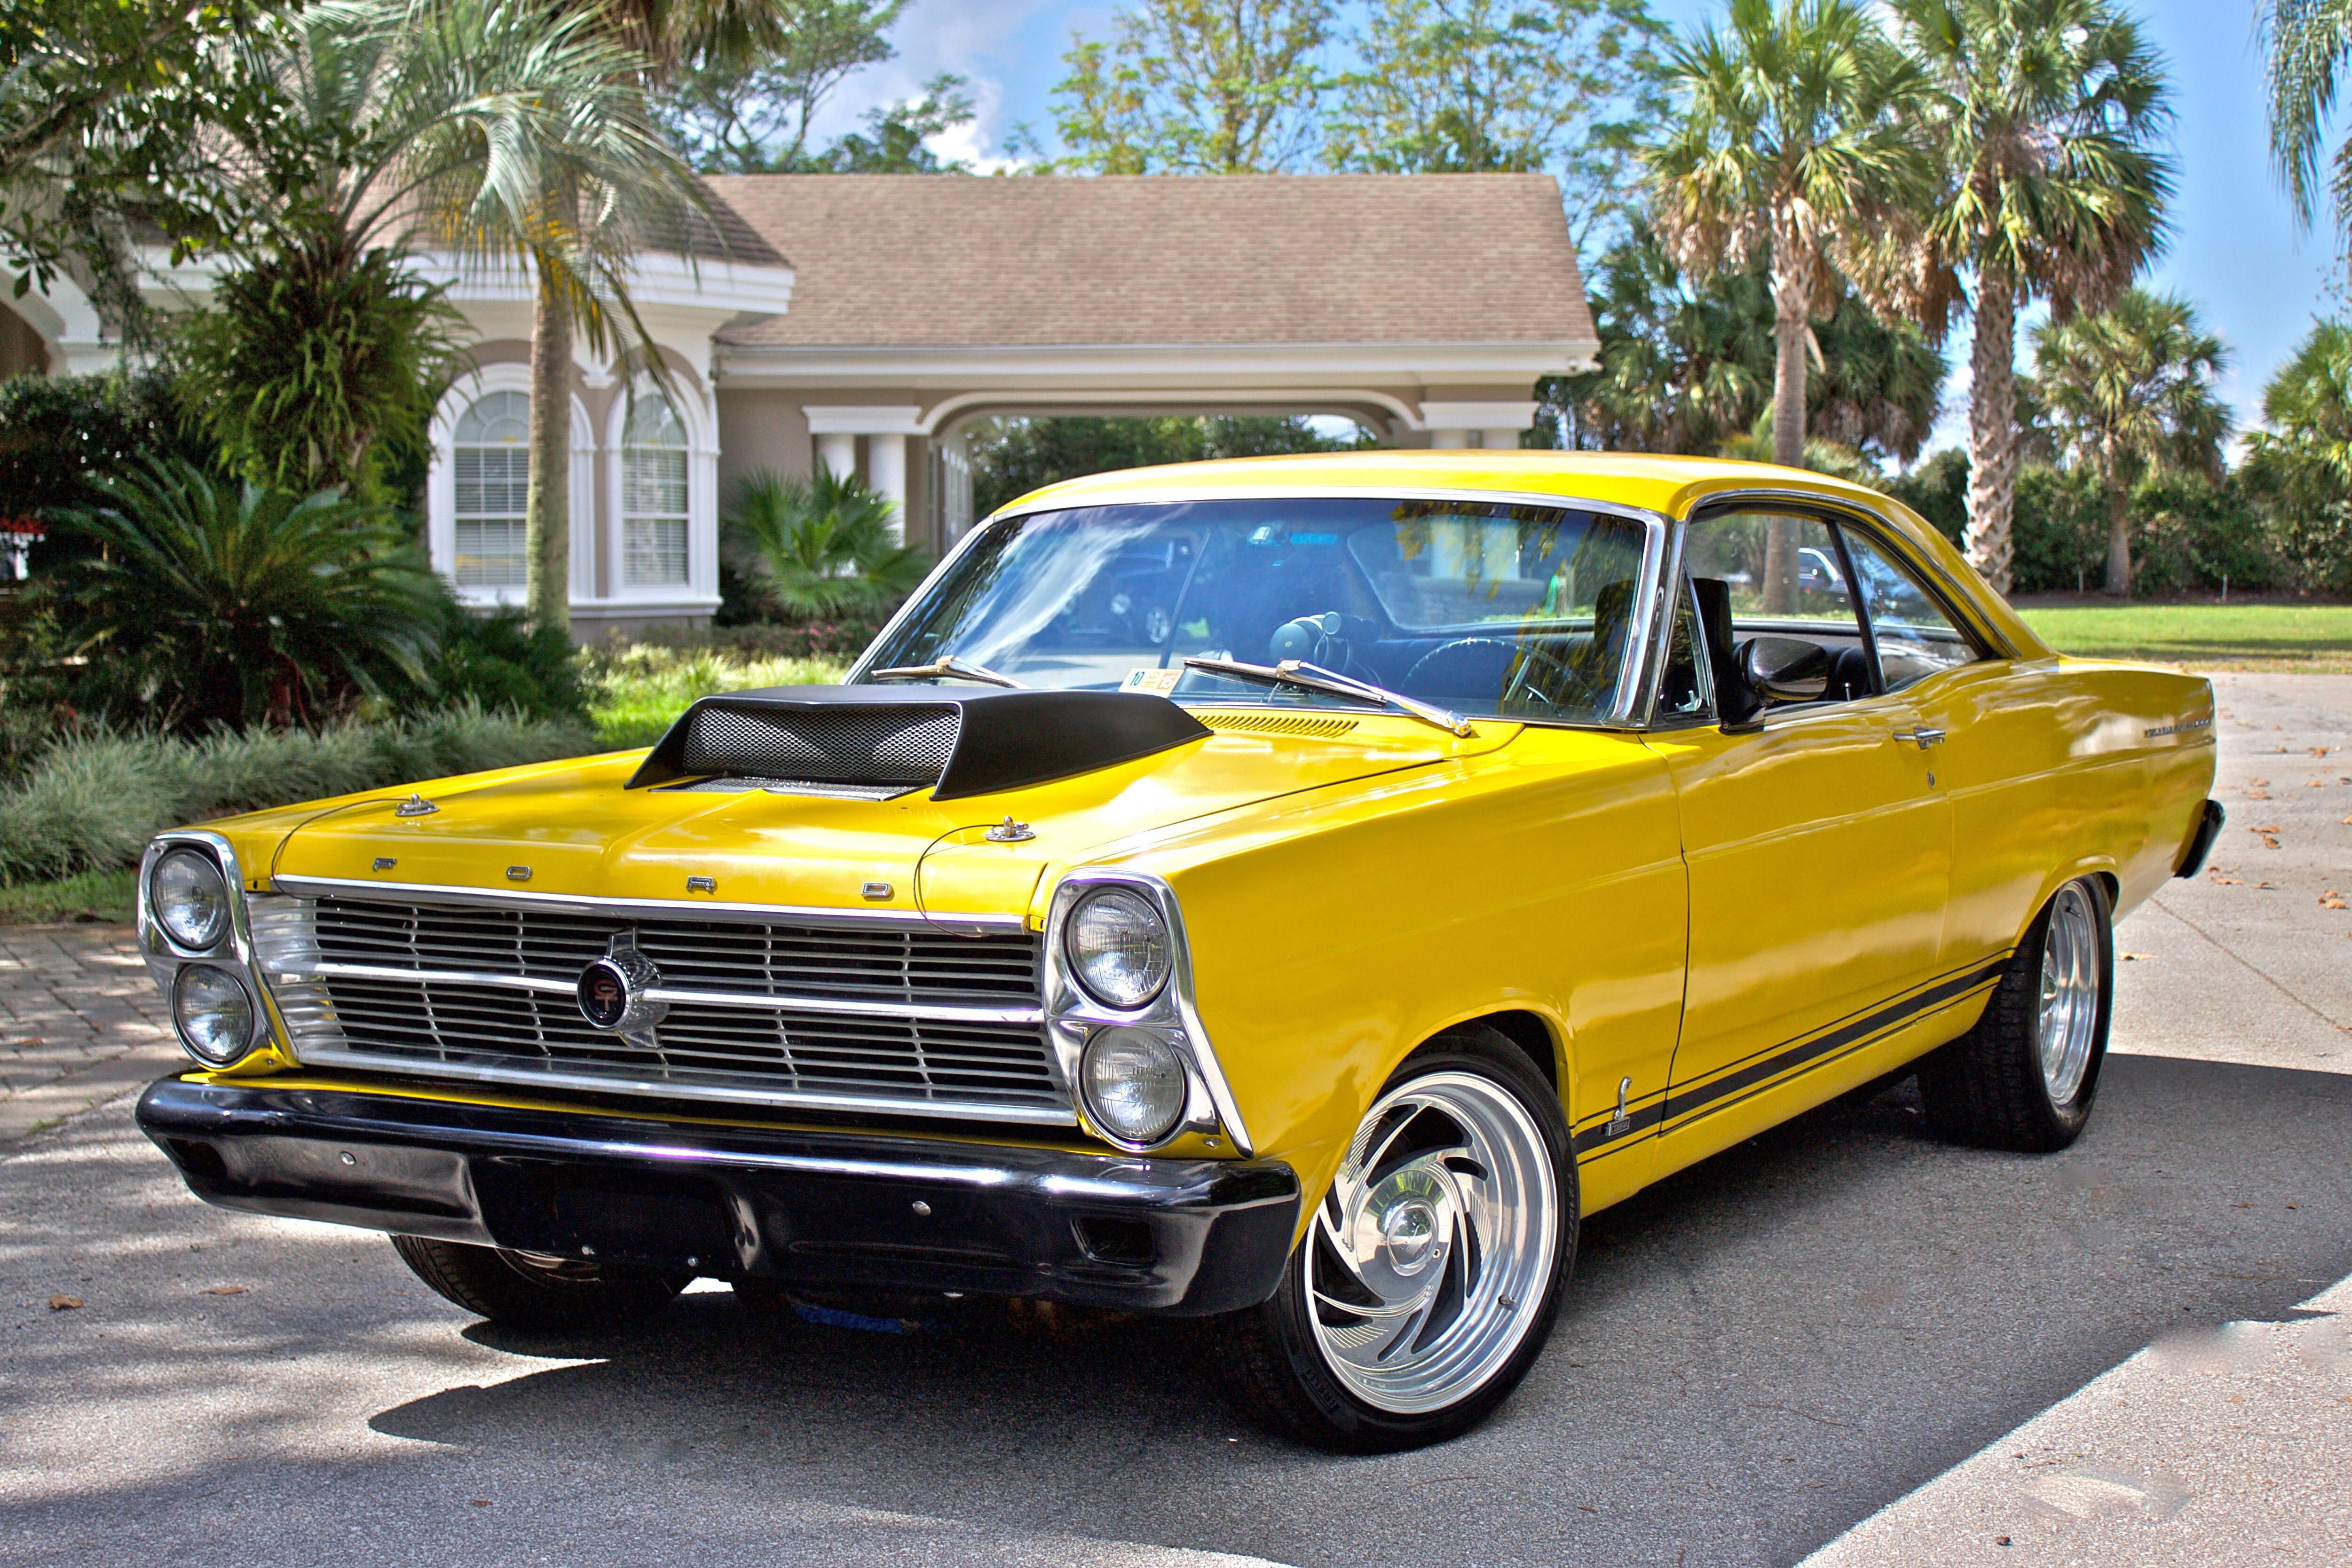 Project Muscle Cars For Sale In Arizona